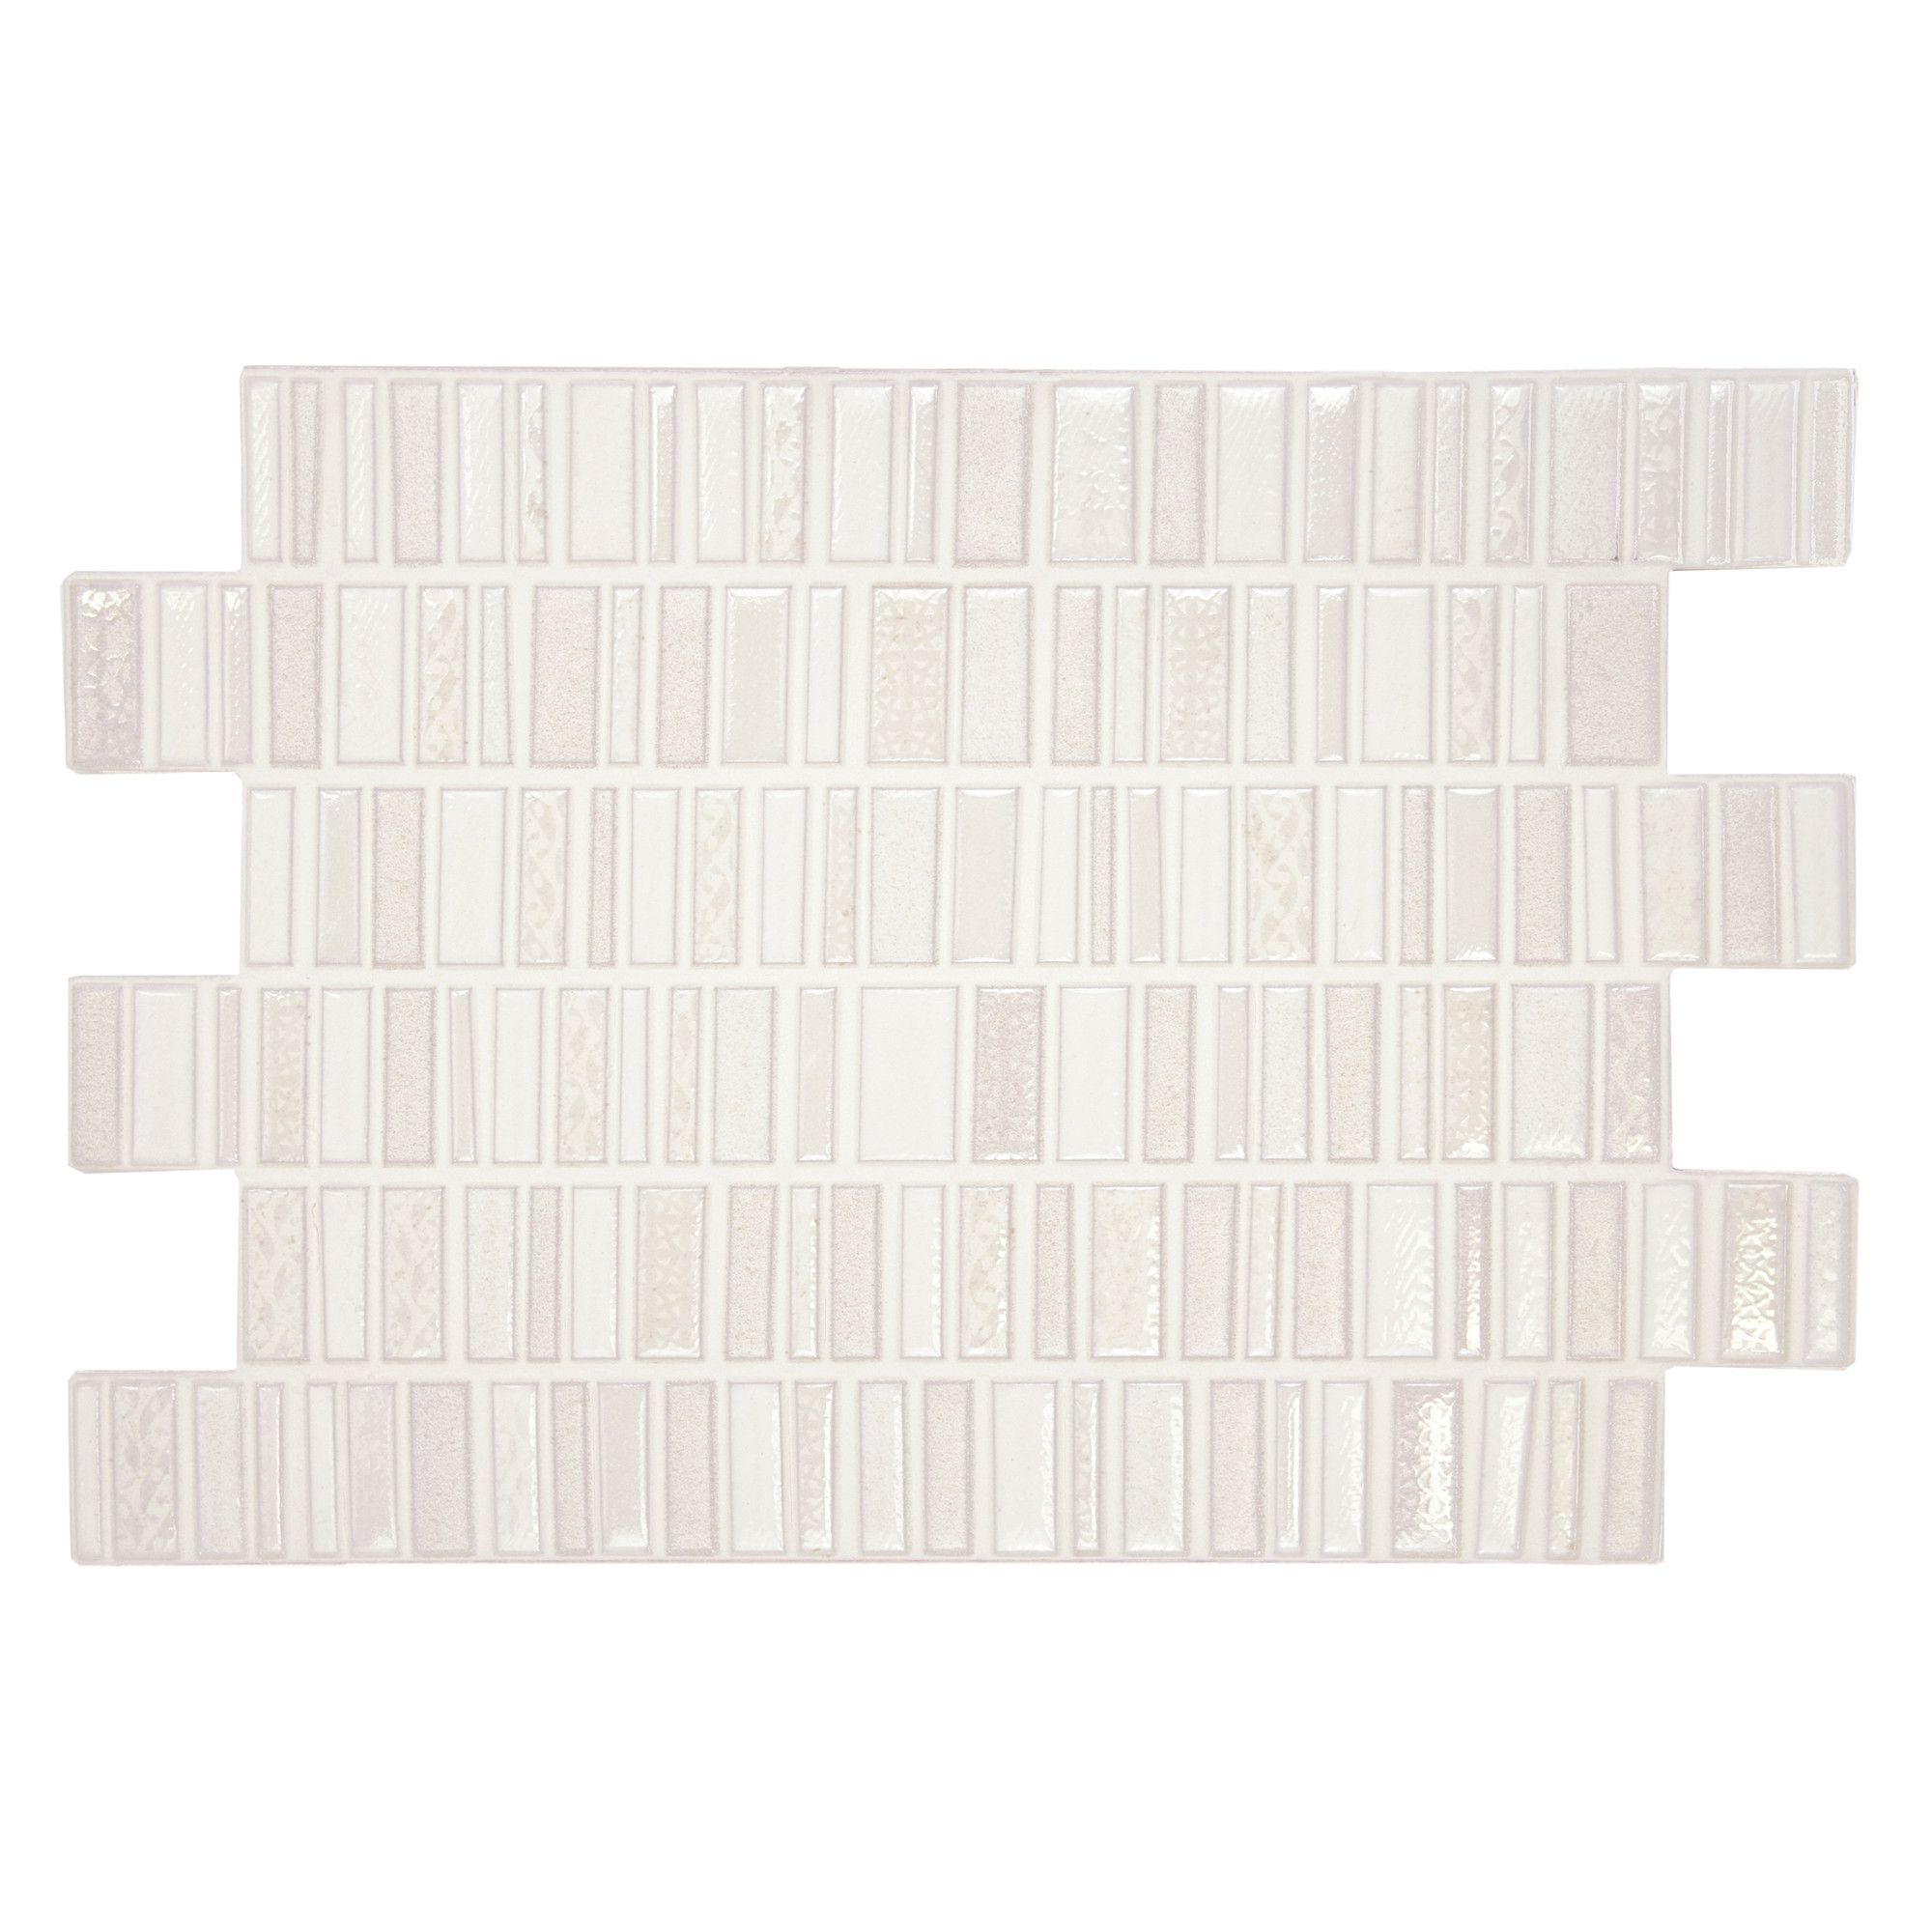 Allure 12 X 8 Ceramic Wall Tile In White Wayfair Ceramic Wall Tiles Merola Tile Wall Tiles